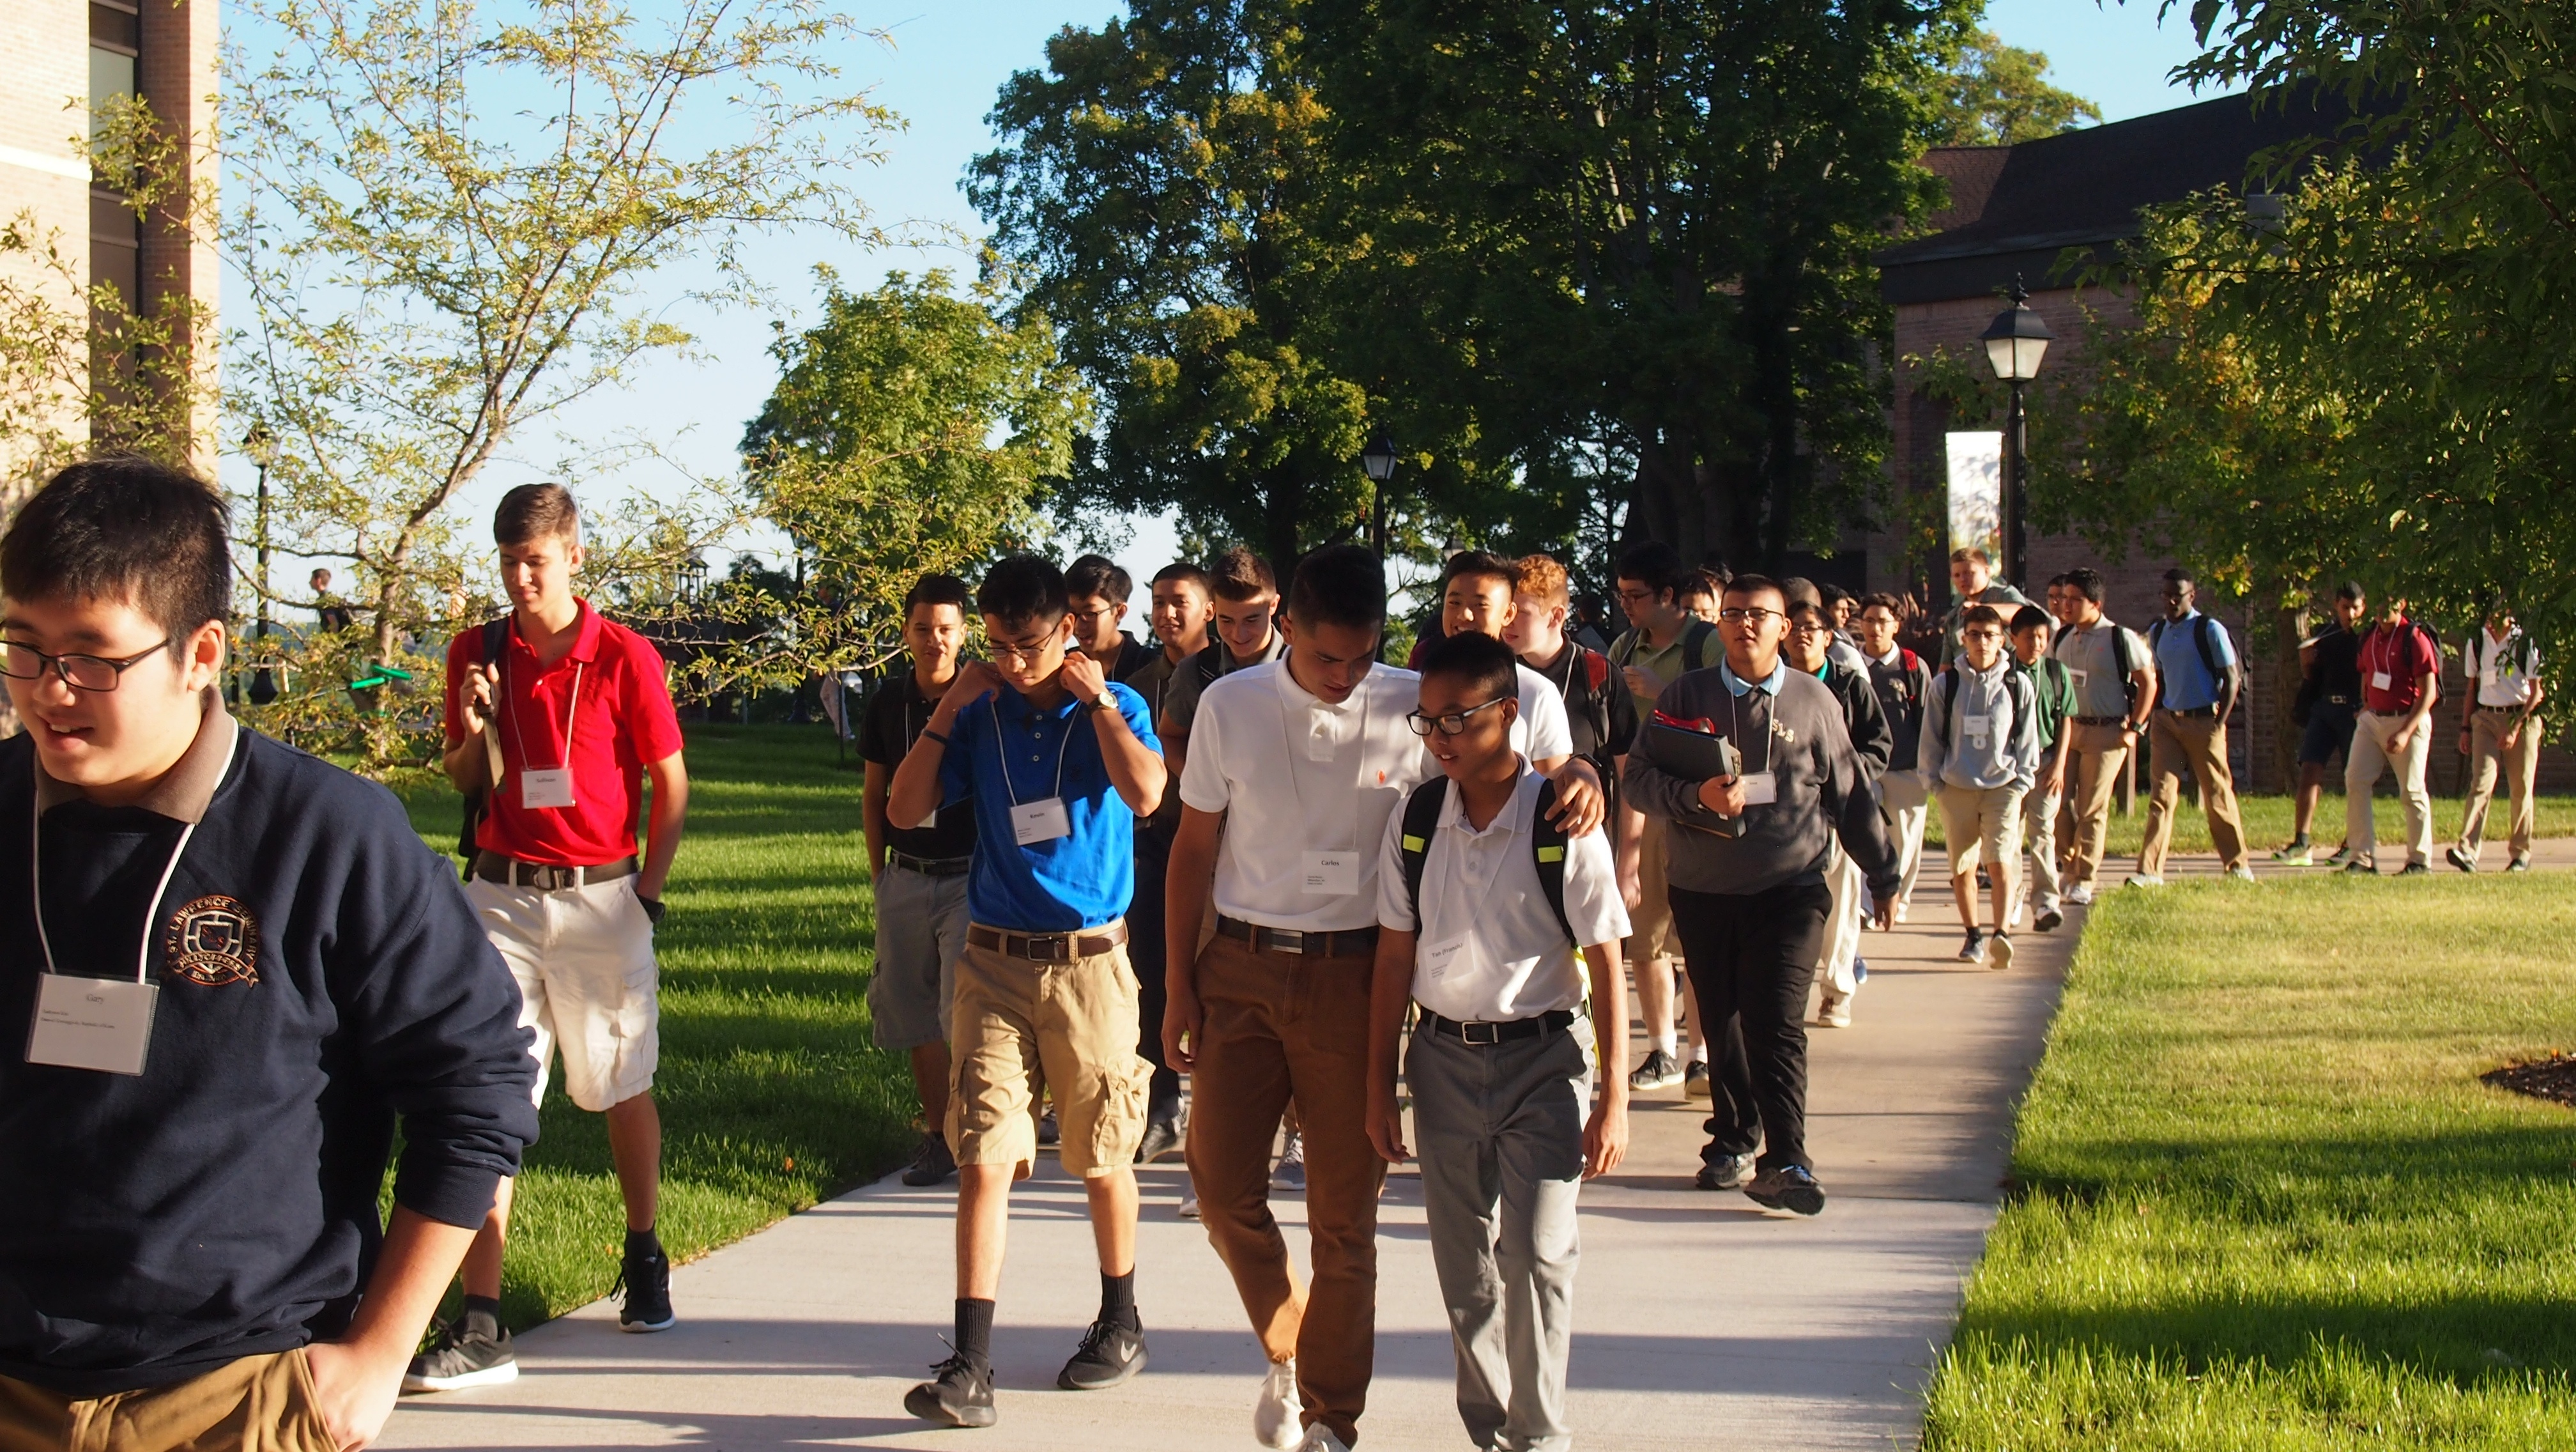 group of students walking